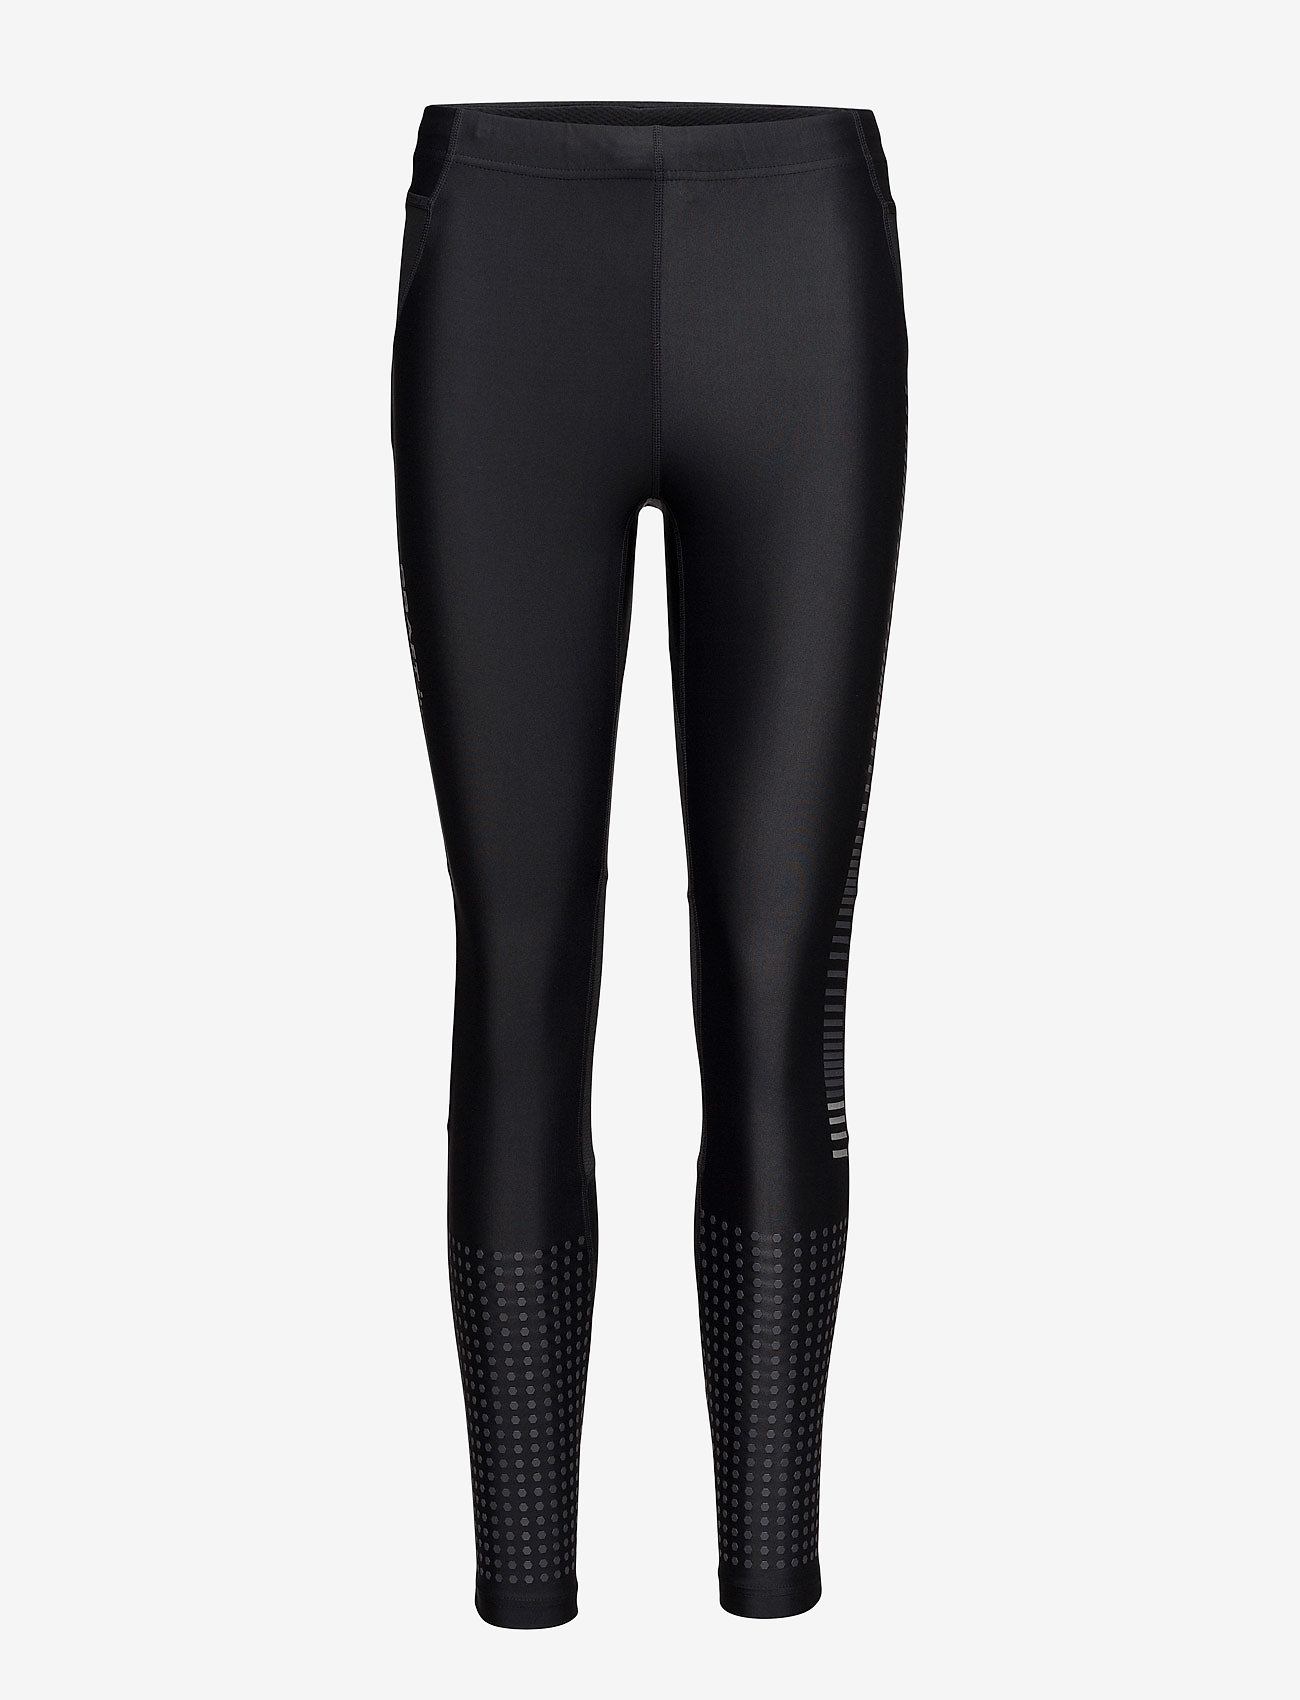 Craft - GRIT TIGHTS  - running & training tights - black - 0